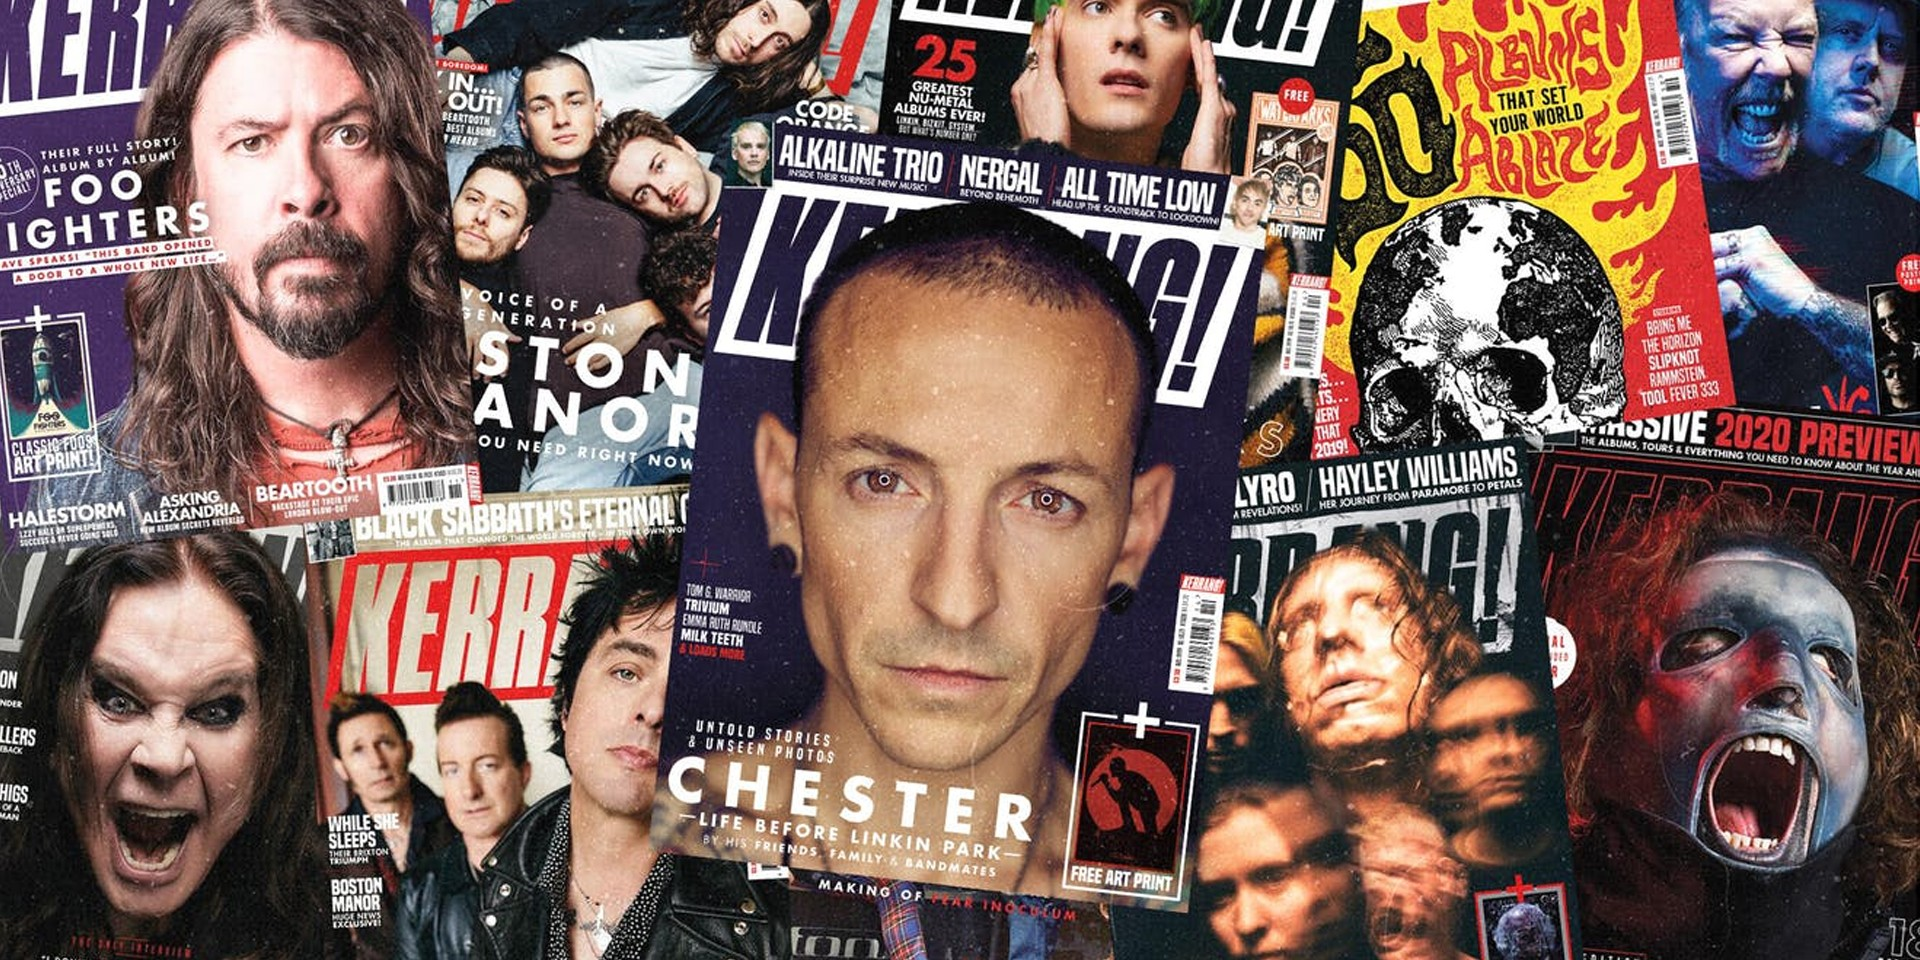 British rock and metal magazine Kerrang! to suspend publication temporarily due to coronavirus pandemic